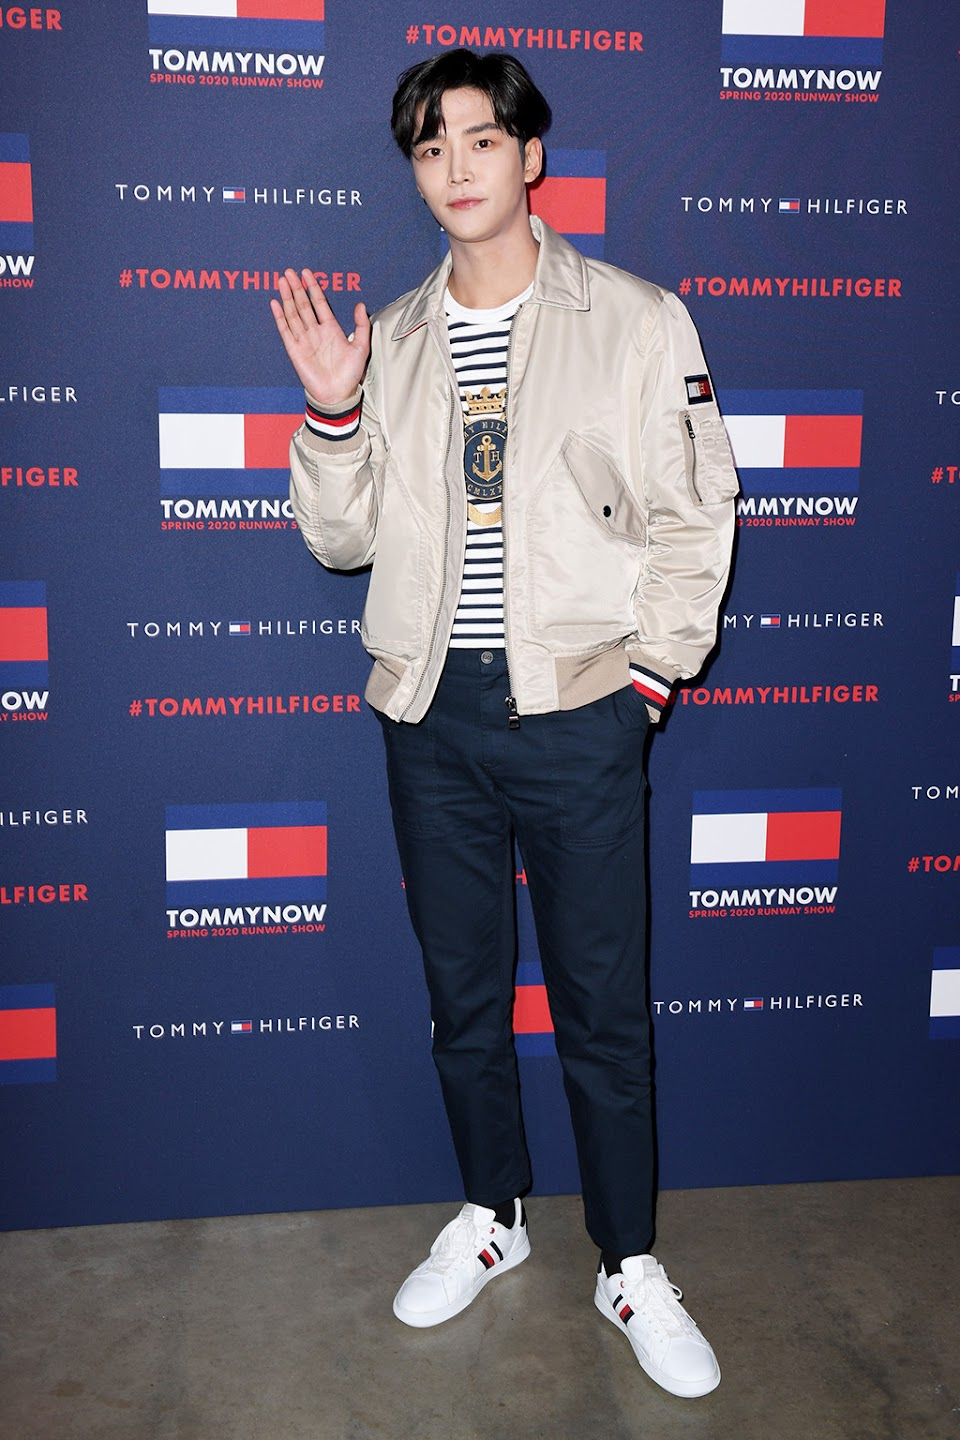 Tommy Hilfiger show, Arrivals, Fall Winter 2020, London Fashion Week, UK - 16 Feb 2020